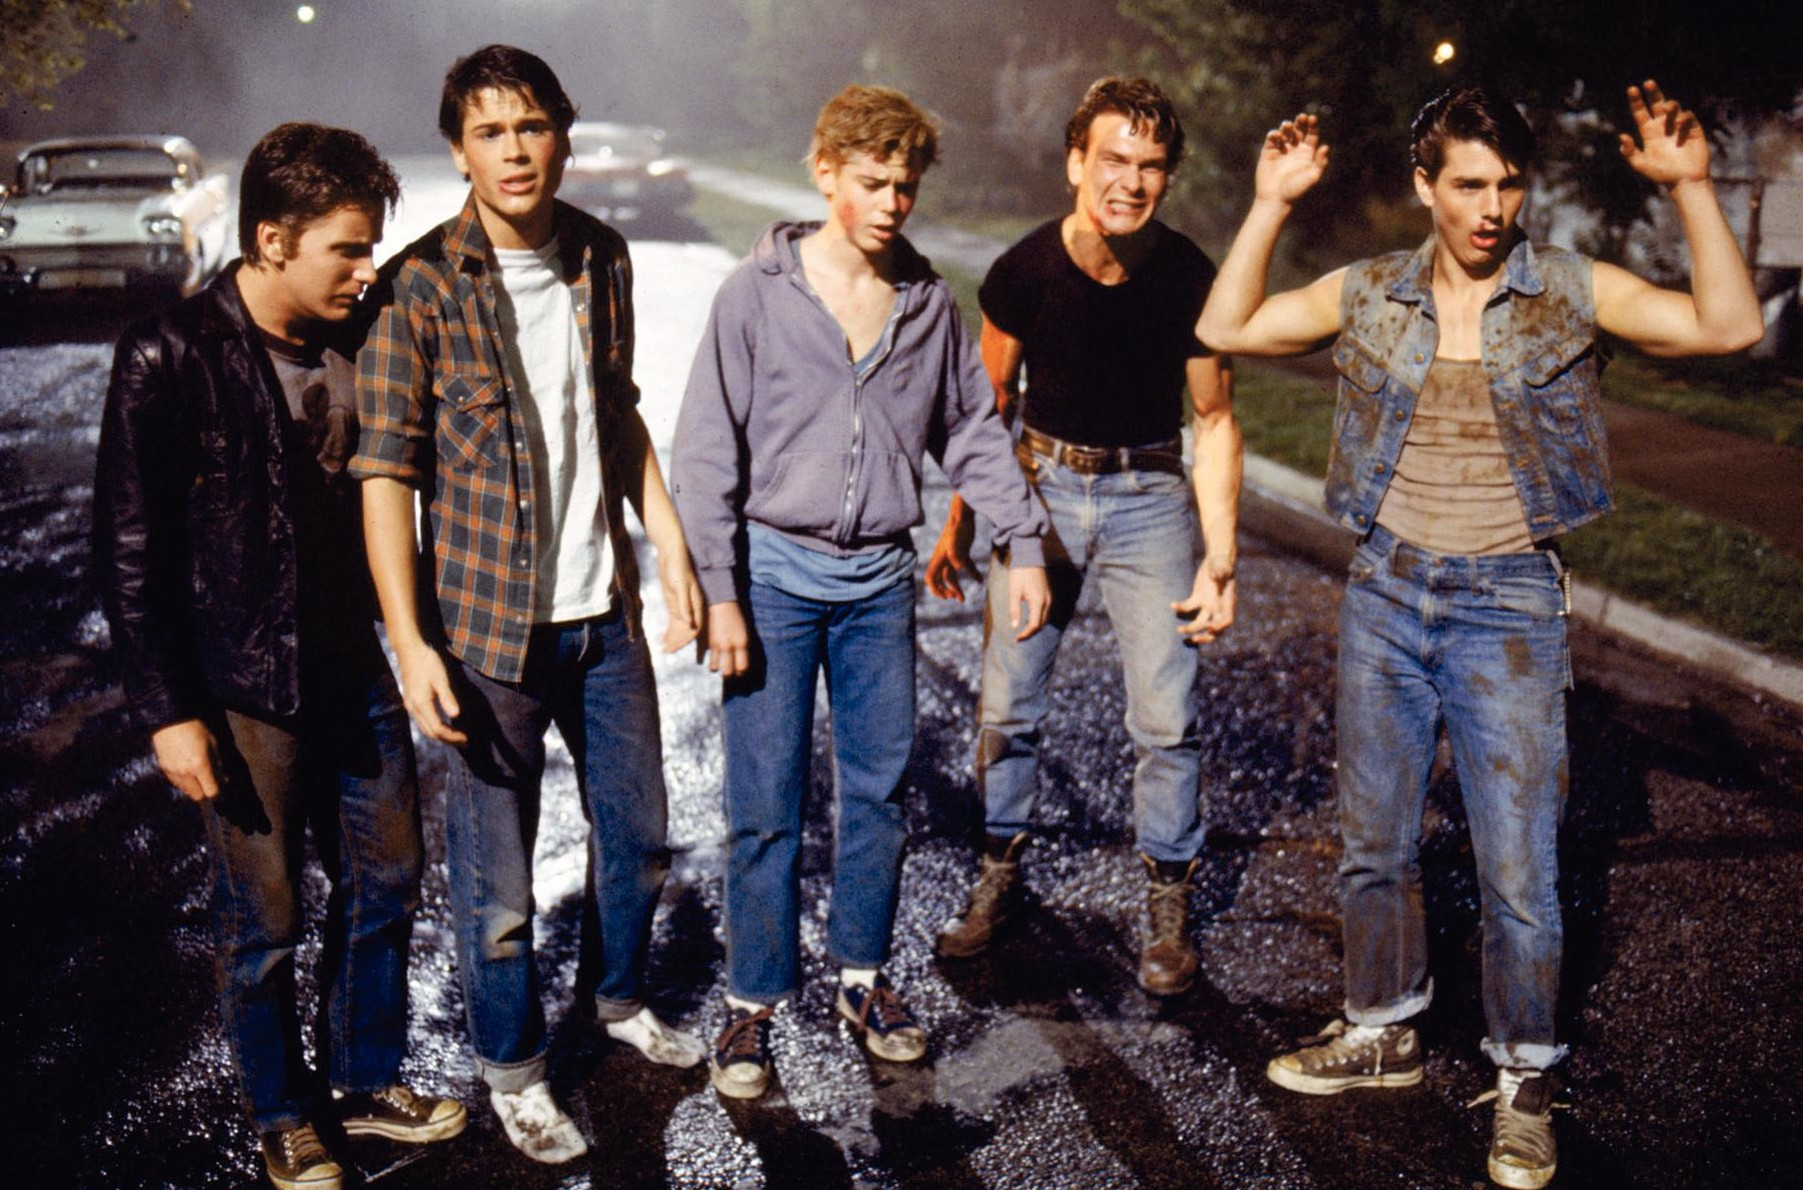 the three life lessons learned by ponyboy in the outsiders a novel by s e hinton